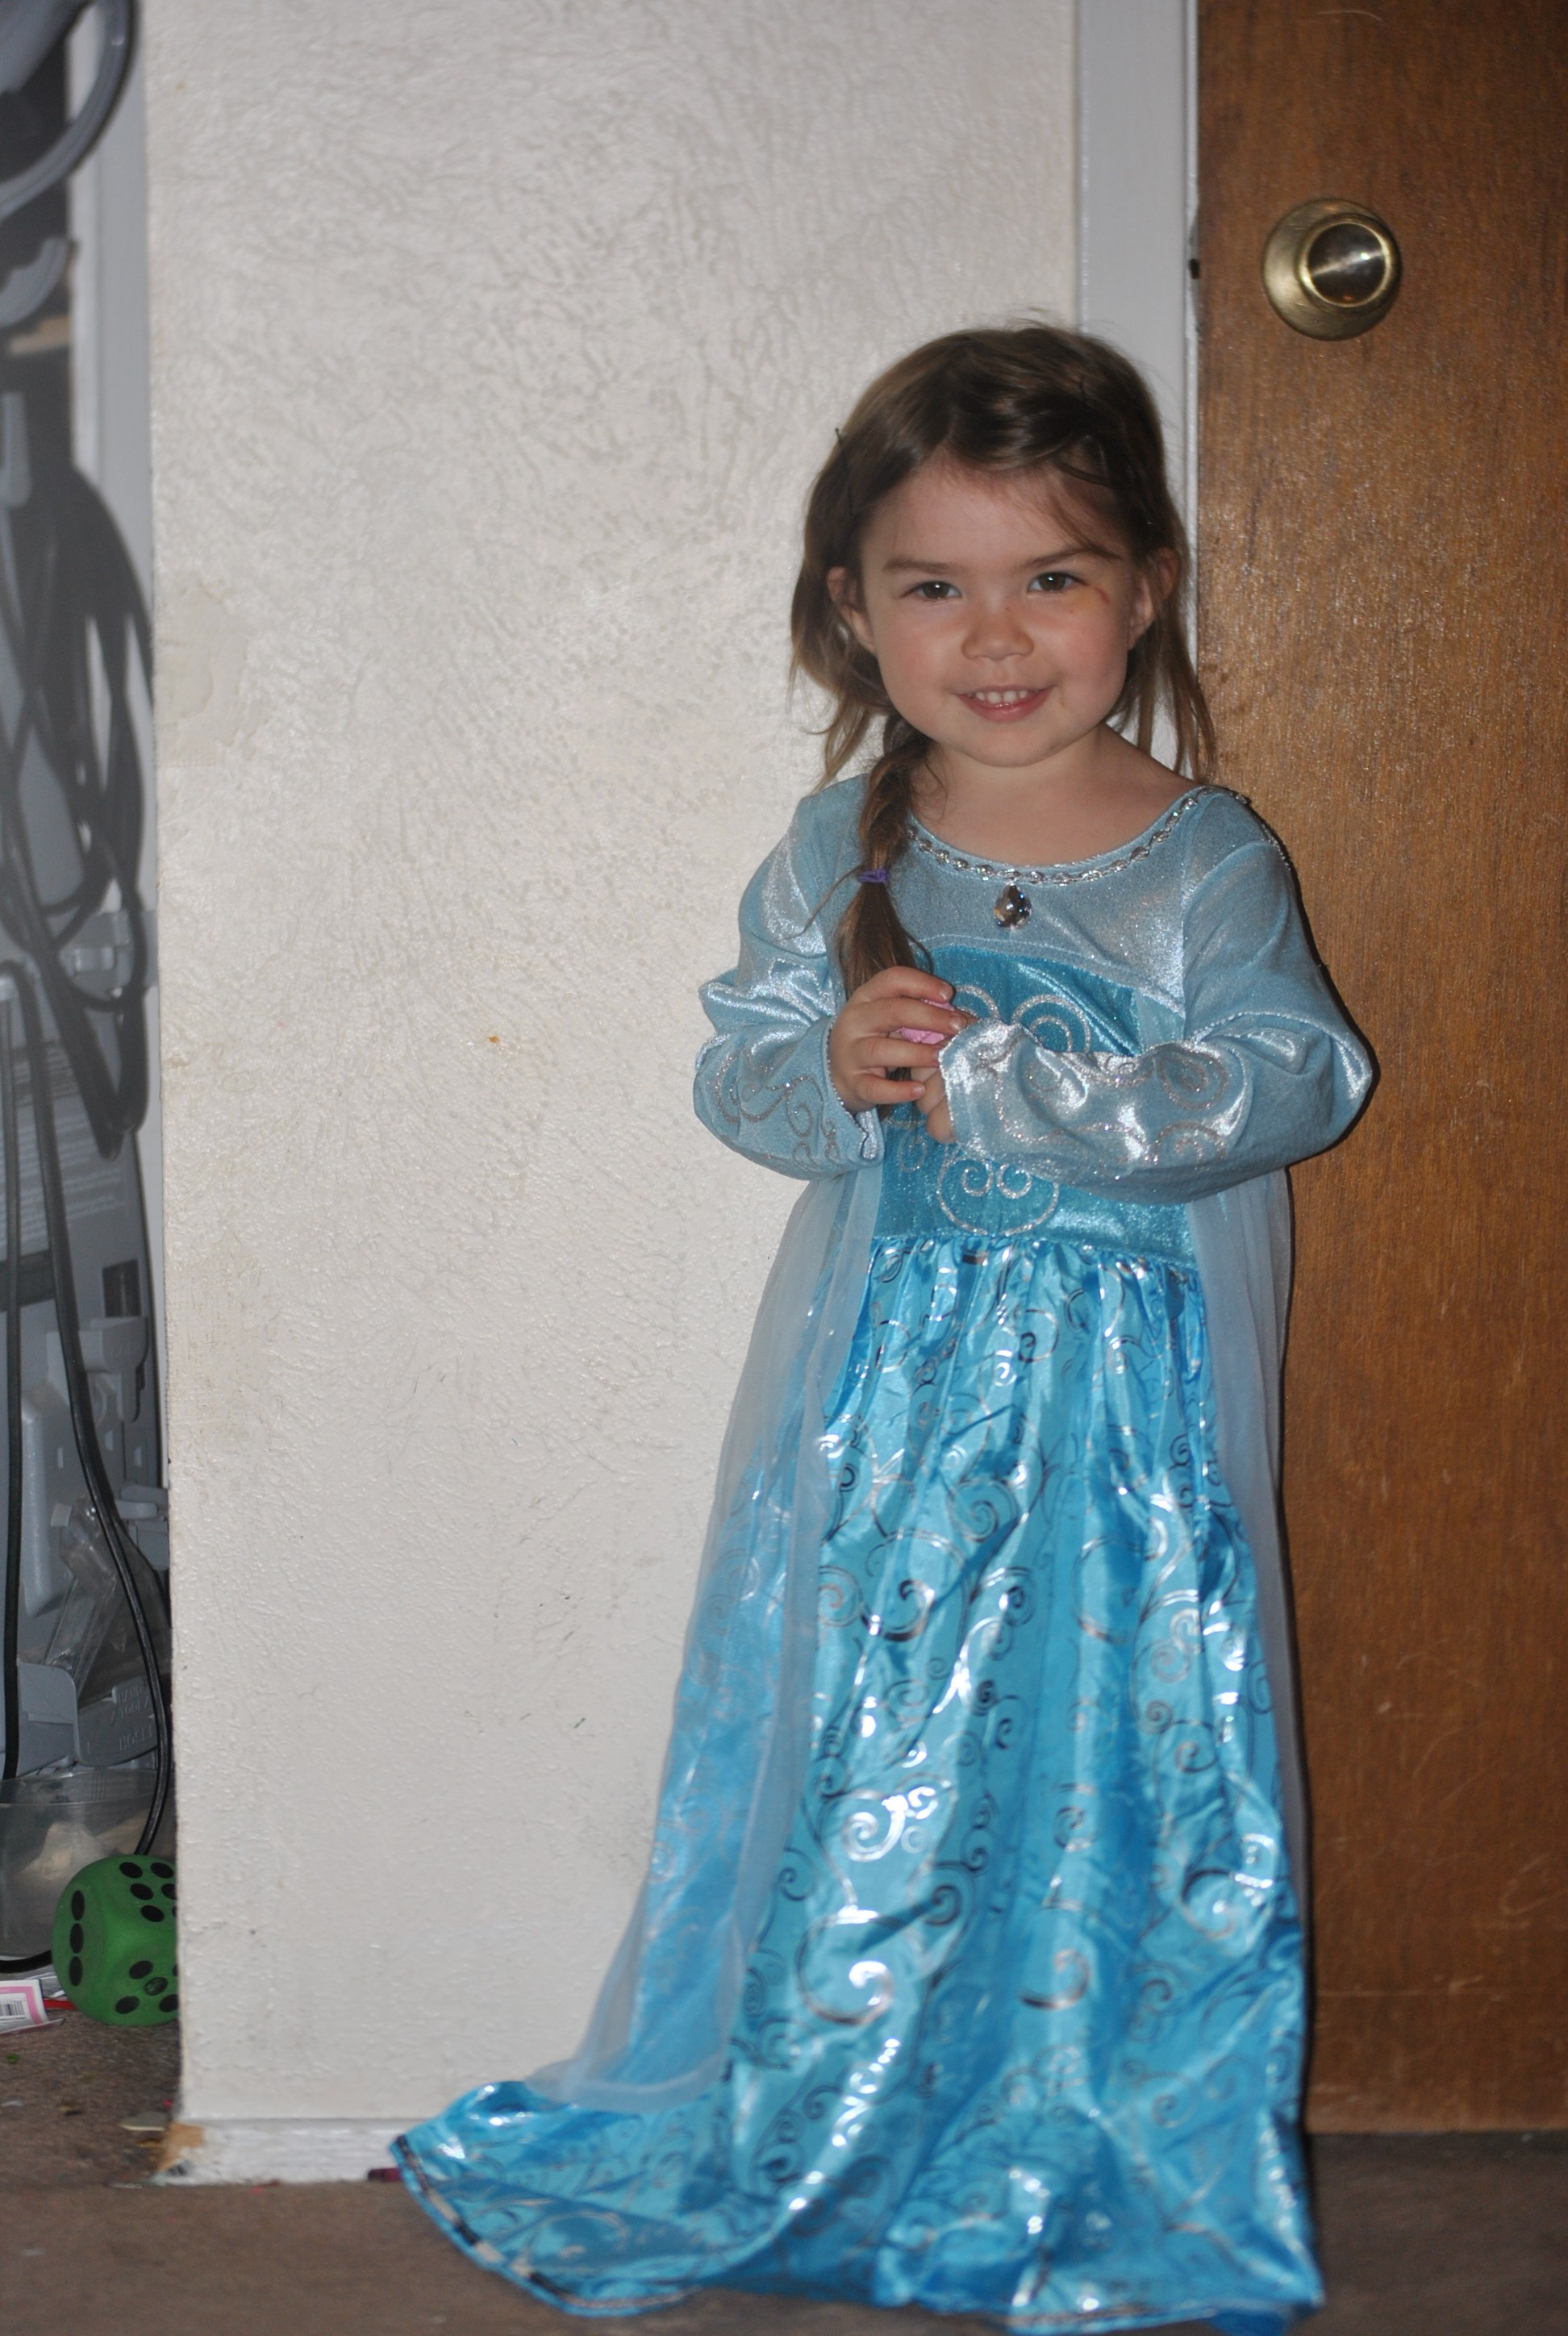 Disney Dress Up Costumes- Why I love Mom Approved Costumes - Tips ...